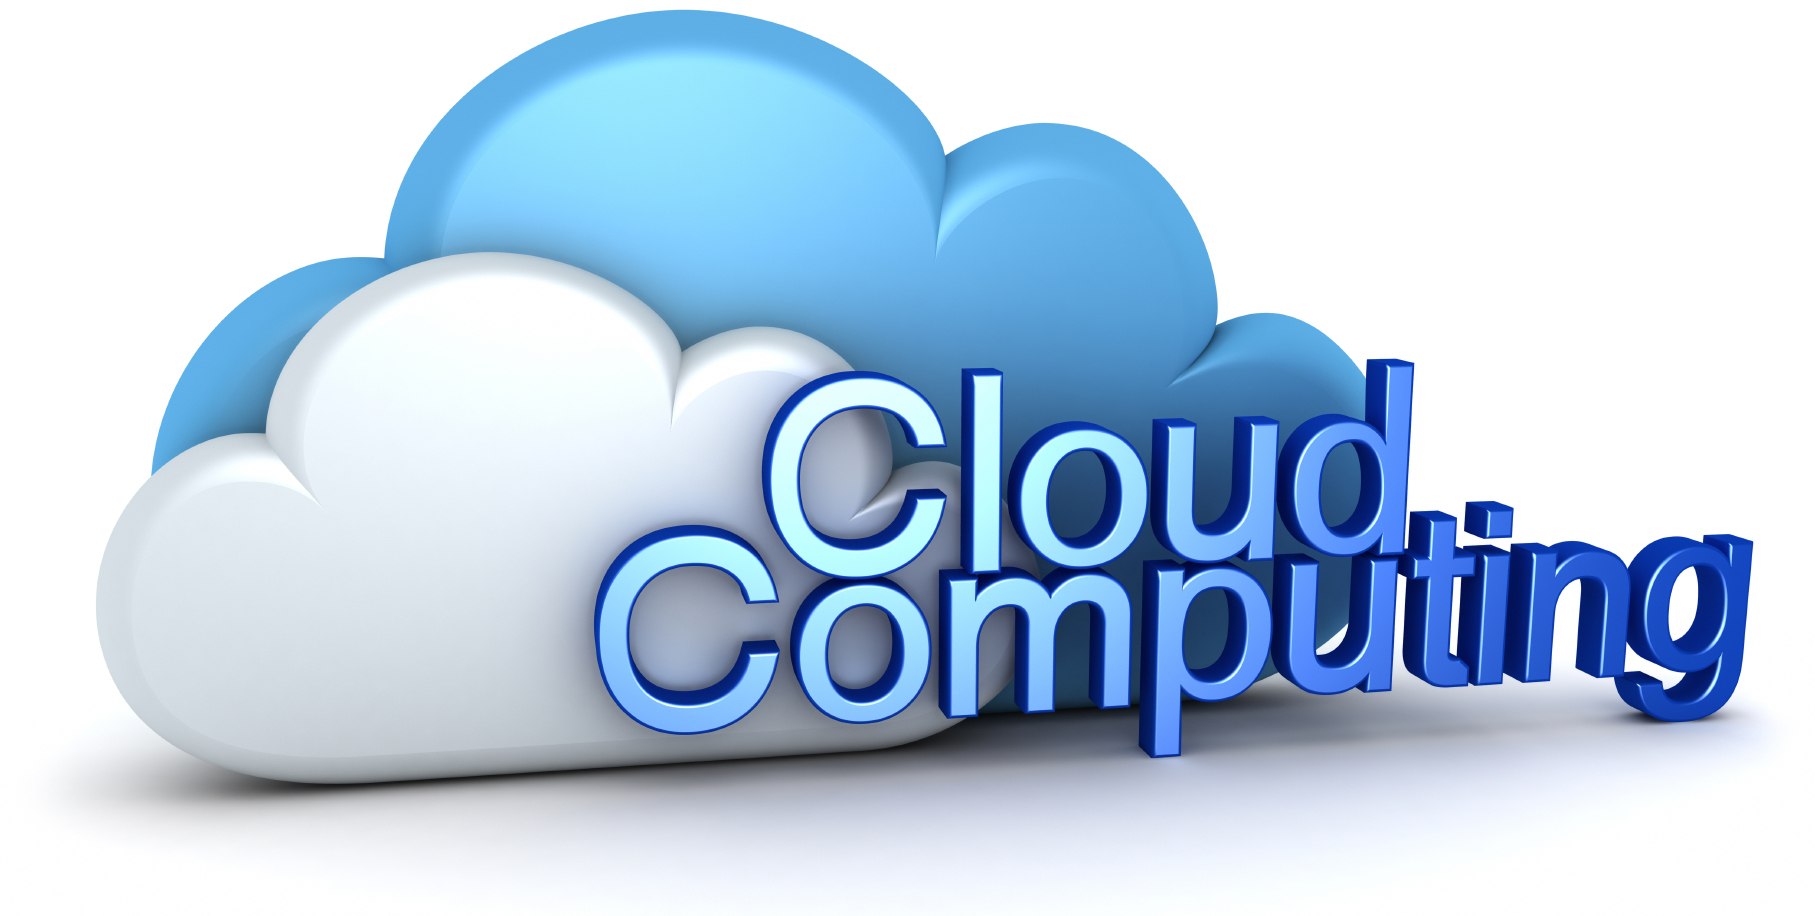 Top 10 Cloud Computing Services